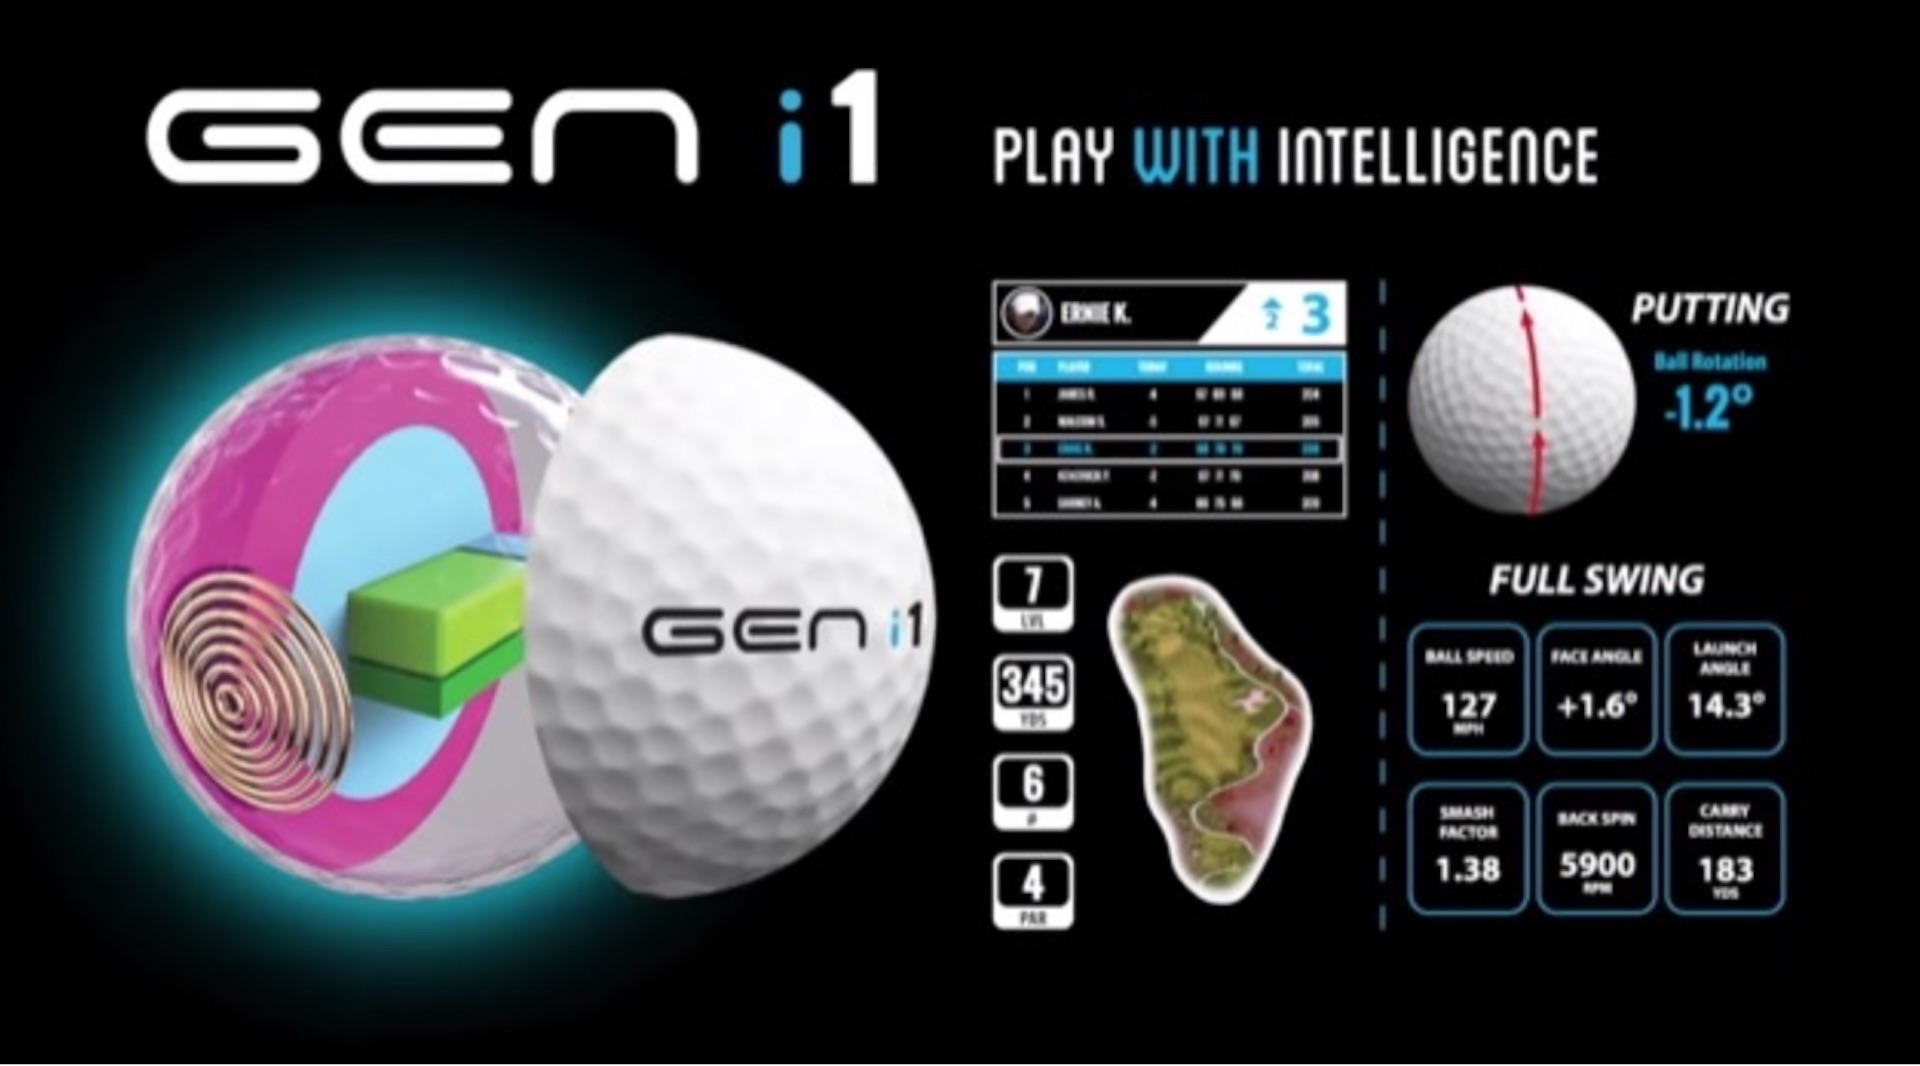 Foul mouthed golf ad for Gen i1 ball